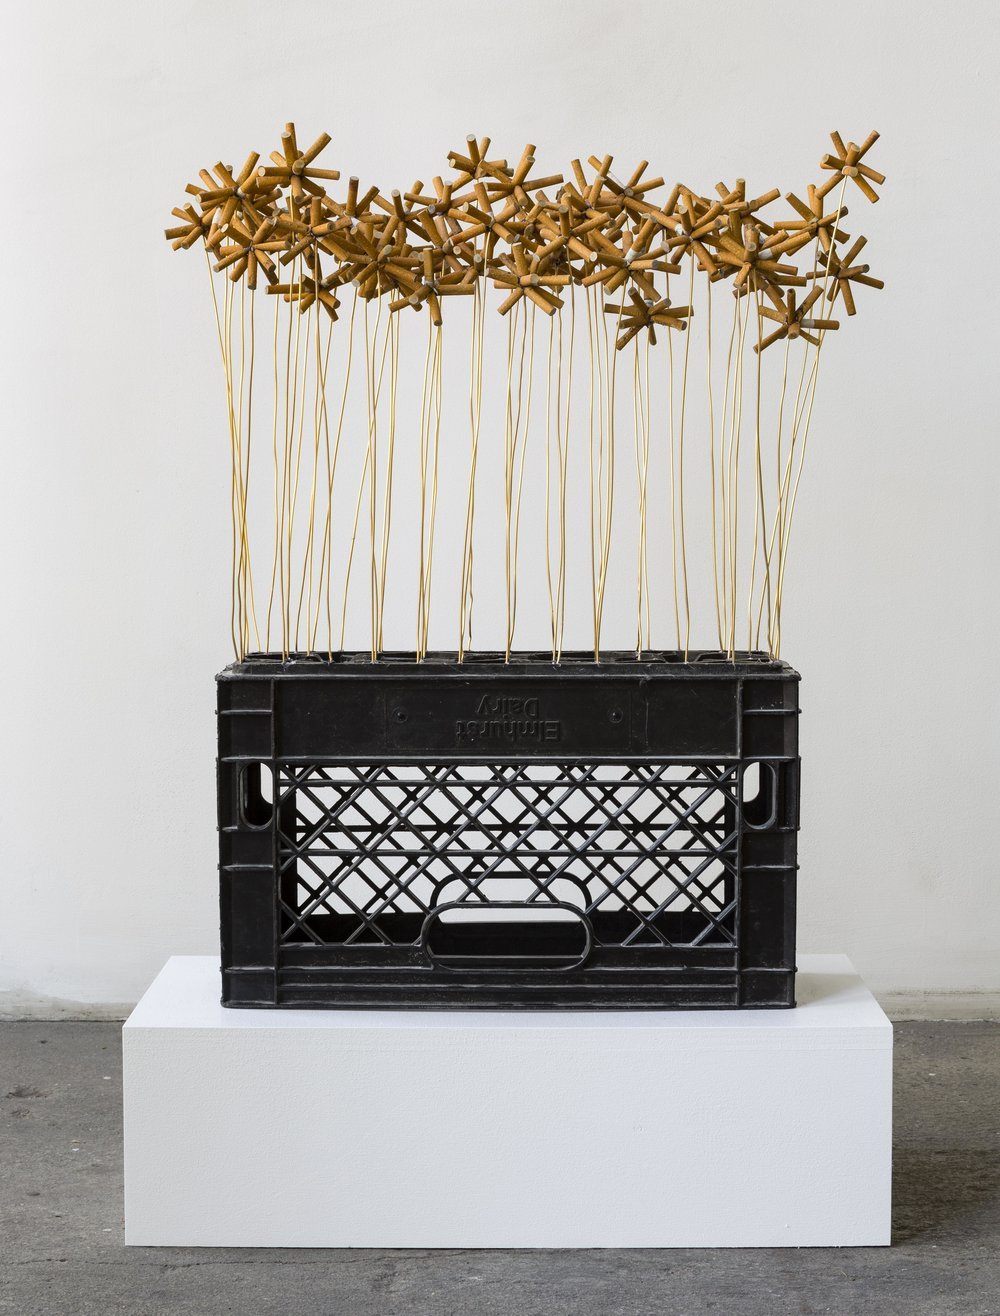 Rodriguez, Shellyne, Orthography of the Wake, 2018, Assemblage, Cigarette butts, bronze wire, crate, 29 x 19 x 7 inches (37 x 24 x 13 inches with crate).jpg